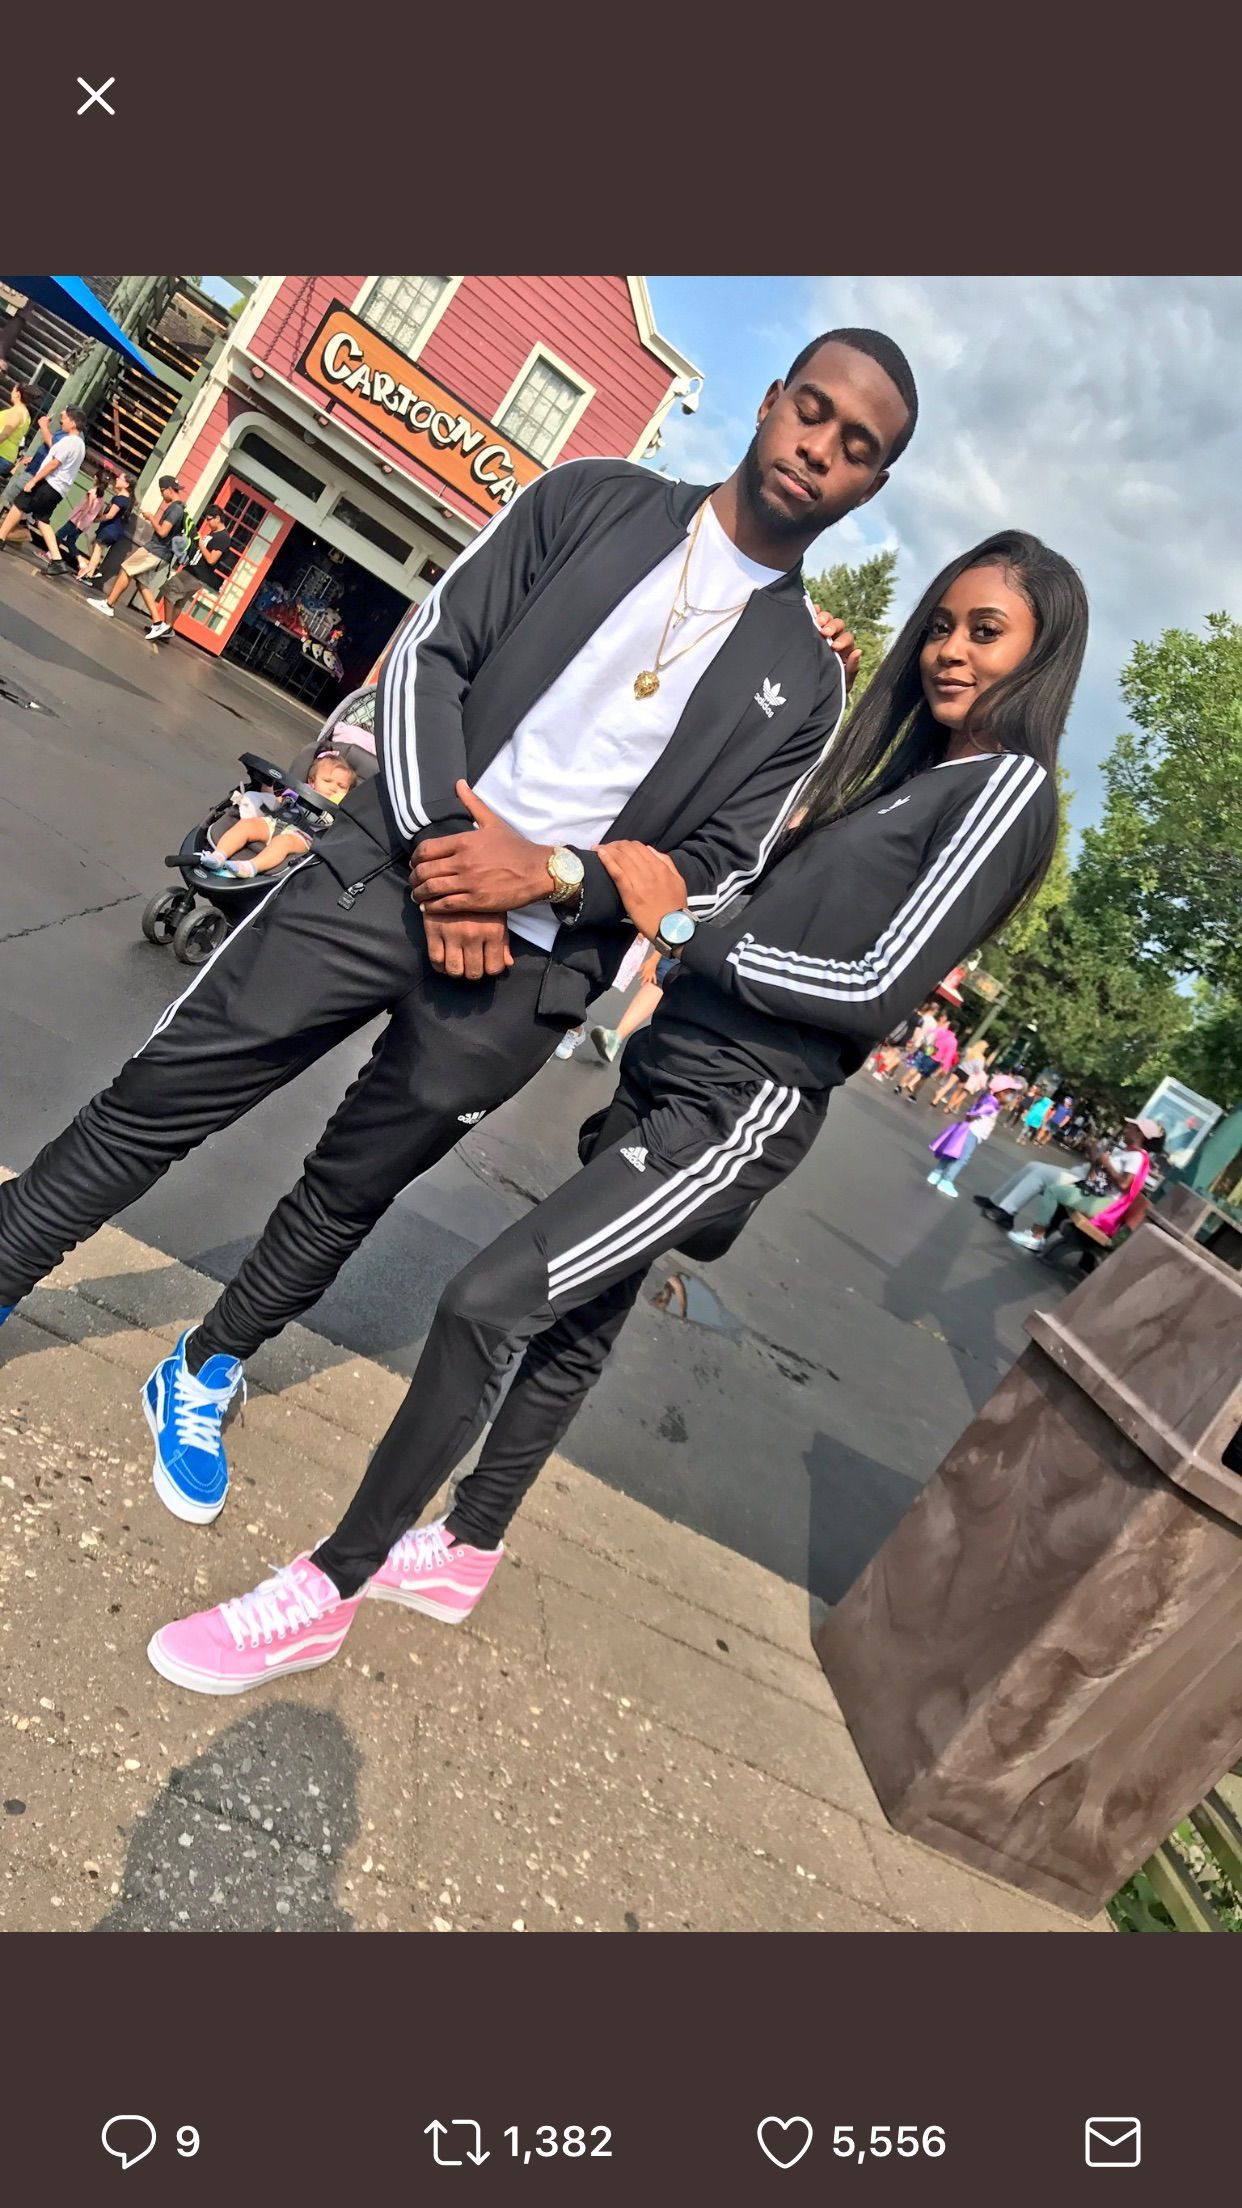 Goals couples matching outfits, interpersonal relationship, street fashion